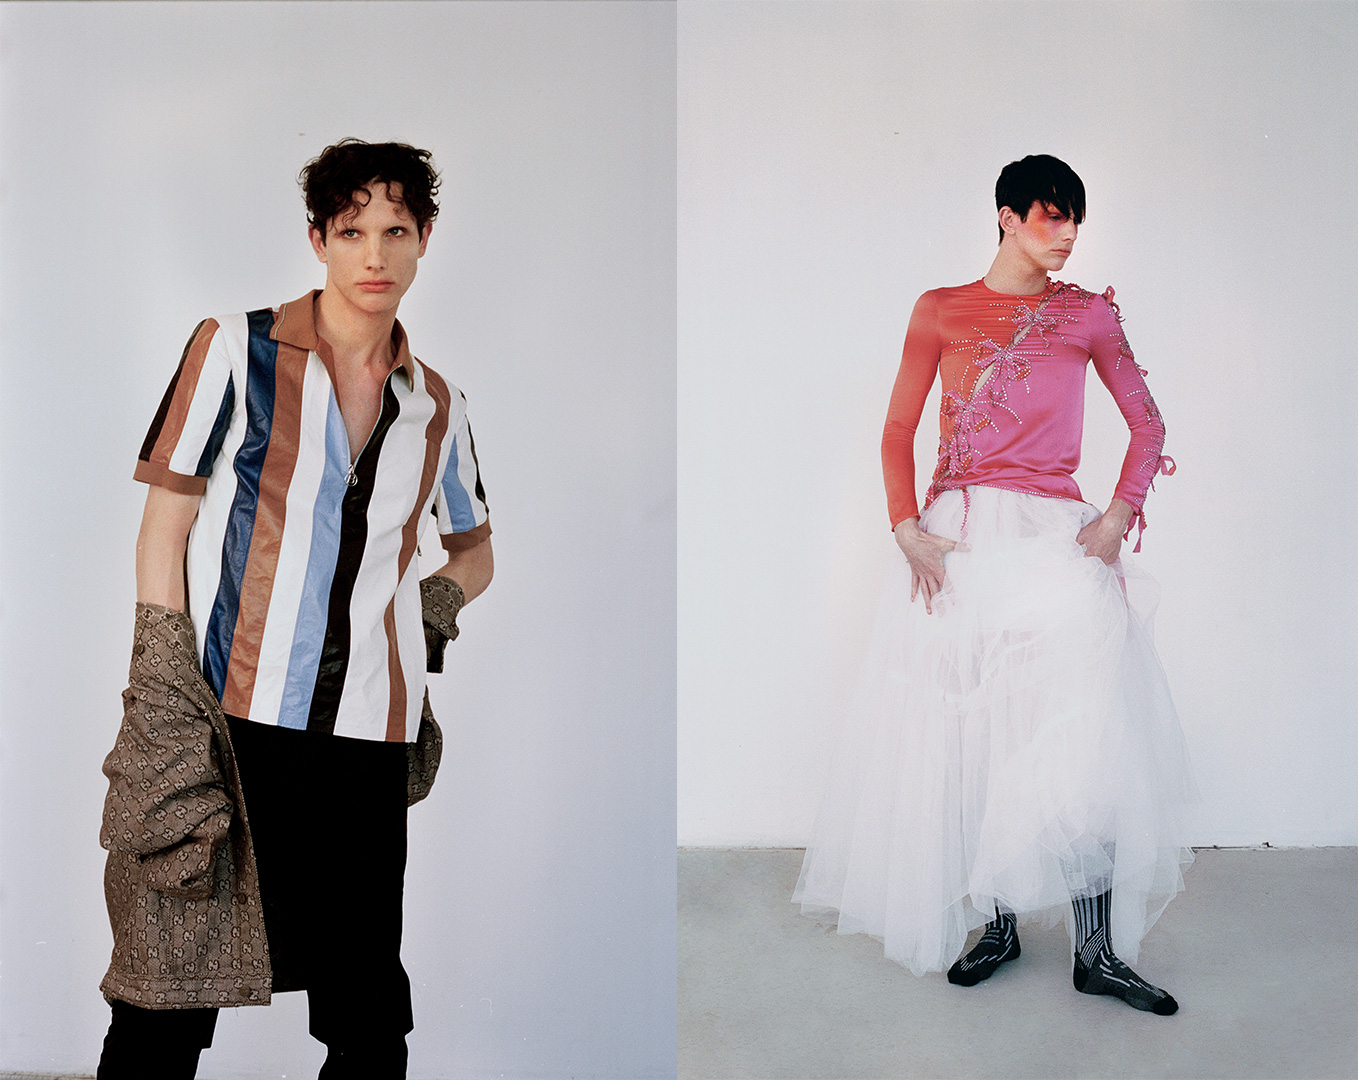 seven sydney queer boys on the power of clothing  identity and self     How does clothing allow you to express your identity in regards to your  sexuality and gender identity  Clothing can help me to express whatever  mood I feel